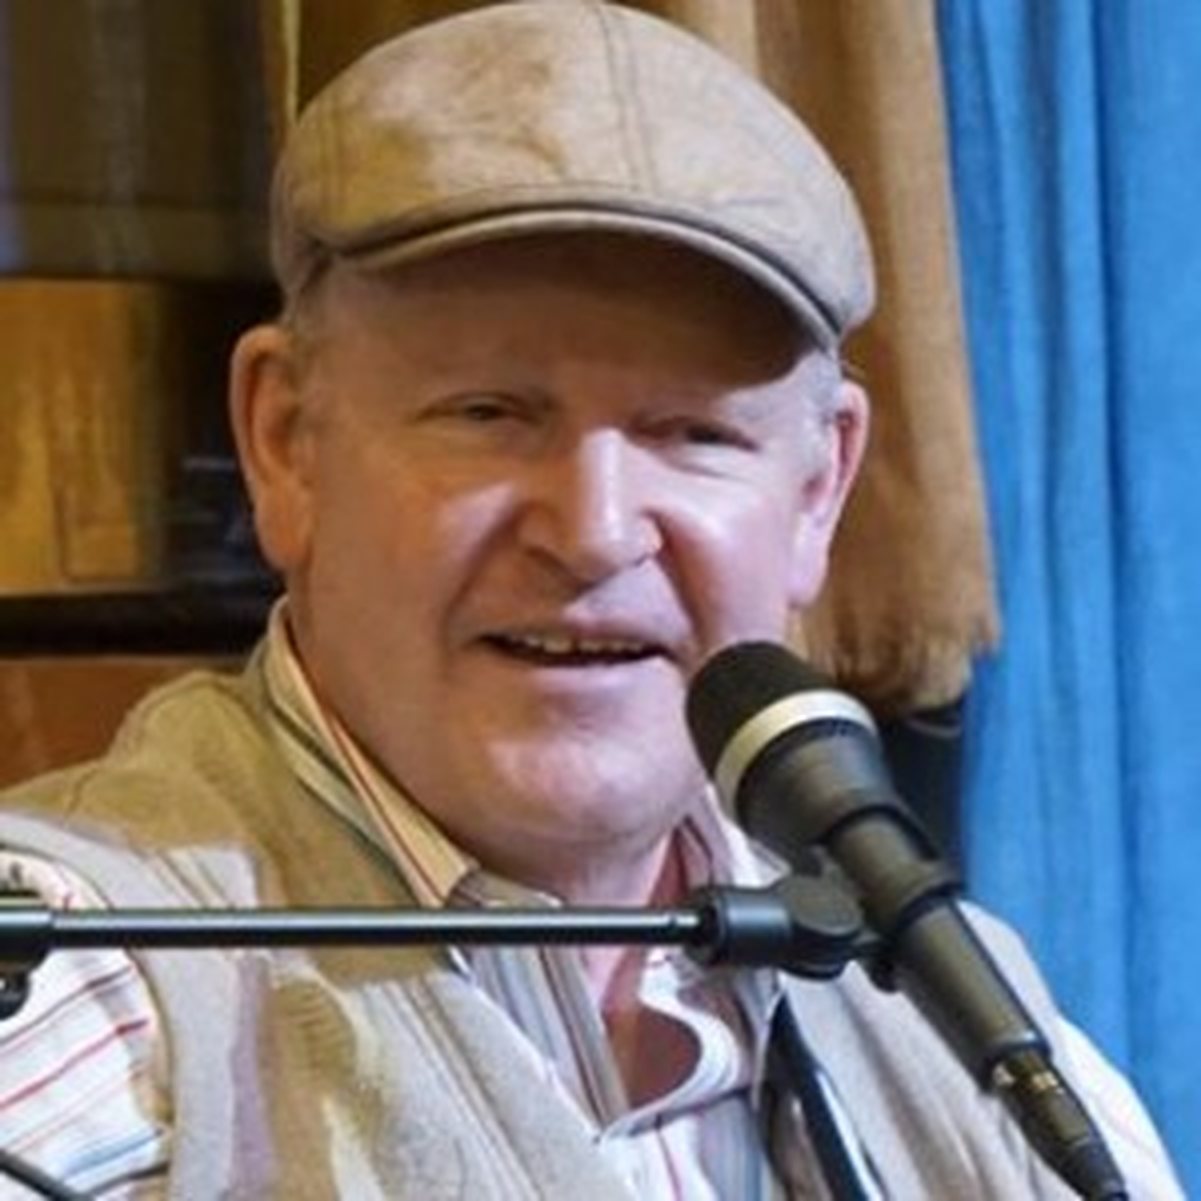 Tom O'Donnell